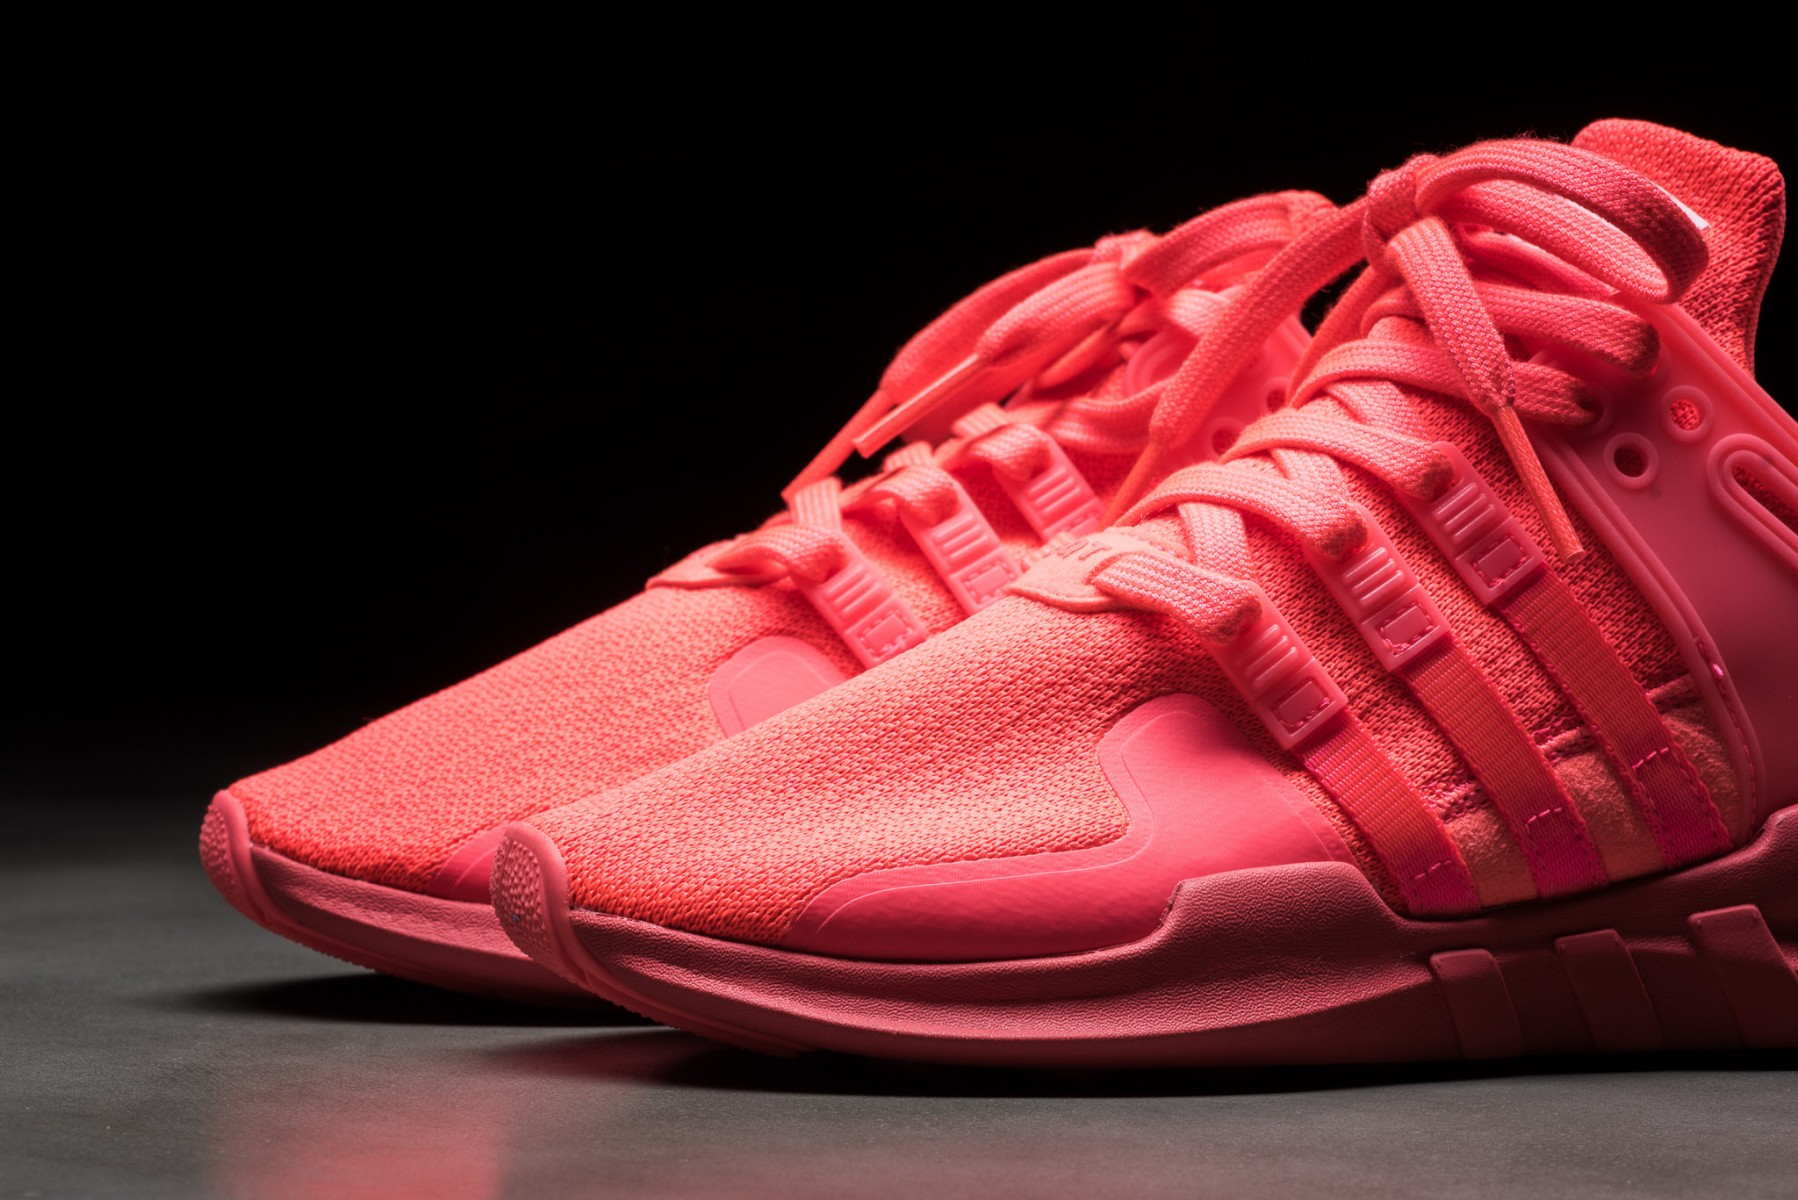 adidas-eqt-advance-support-hot-pink-2-1798x1200